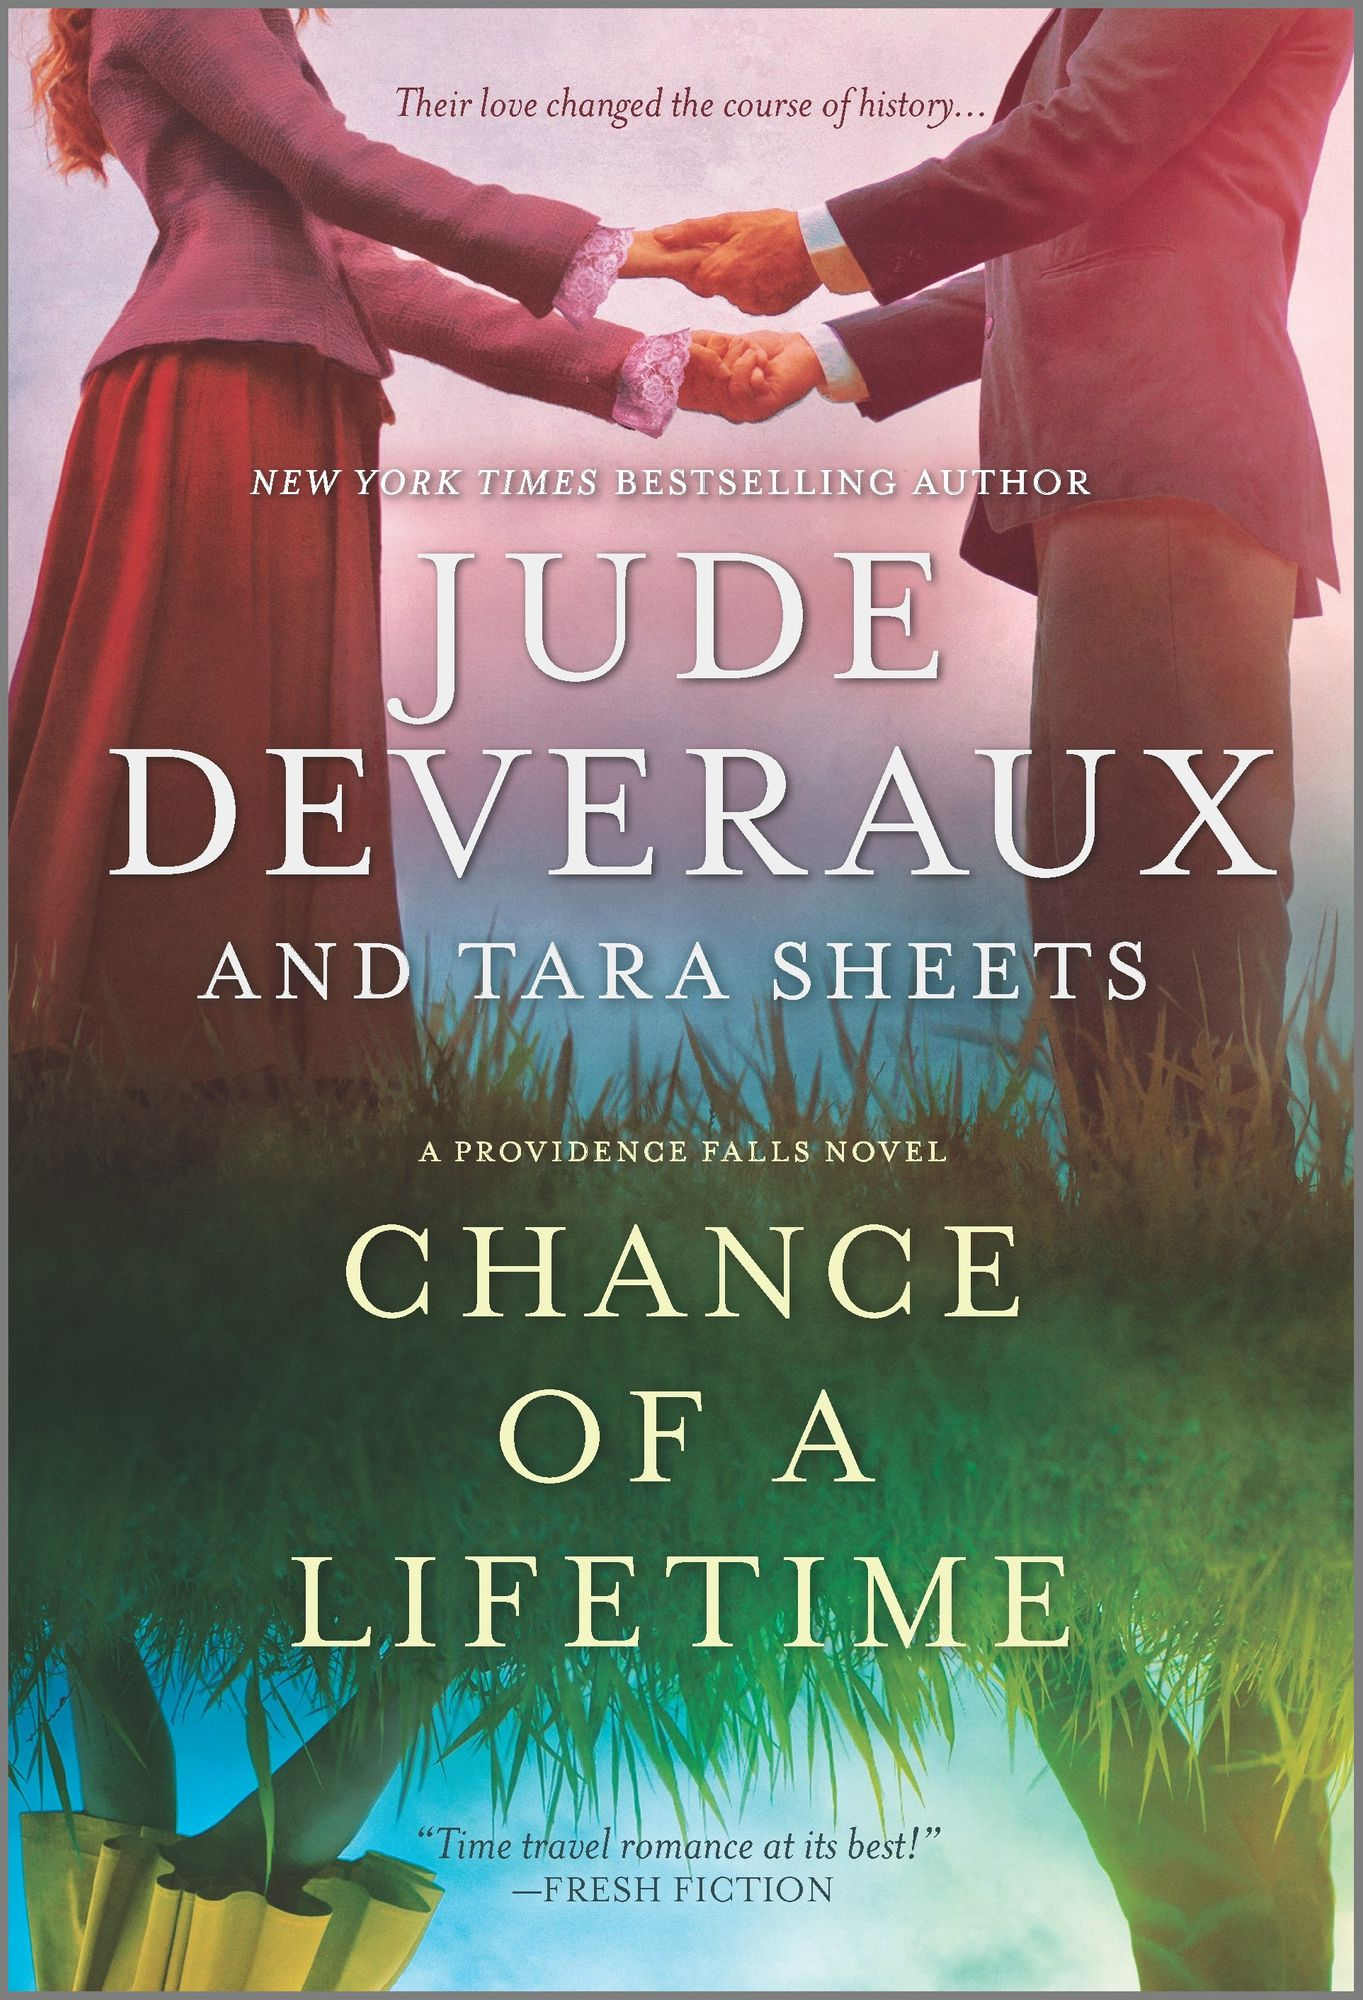 Chance of a Lifetime by Jude Deveraux and Tara Sheets